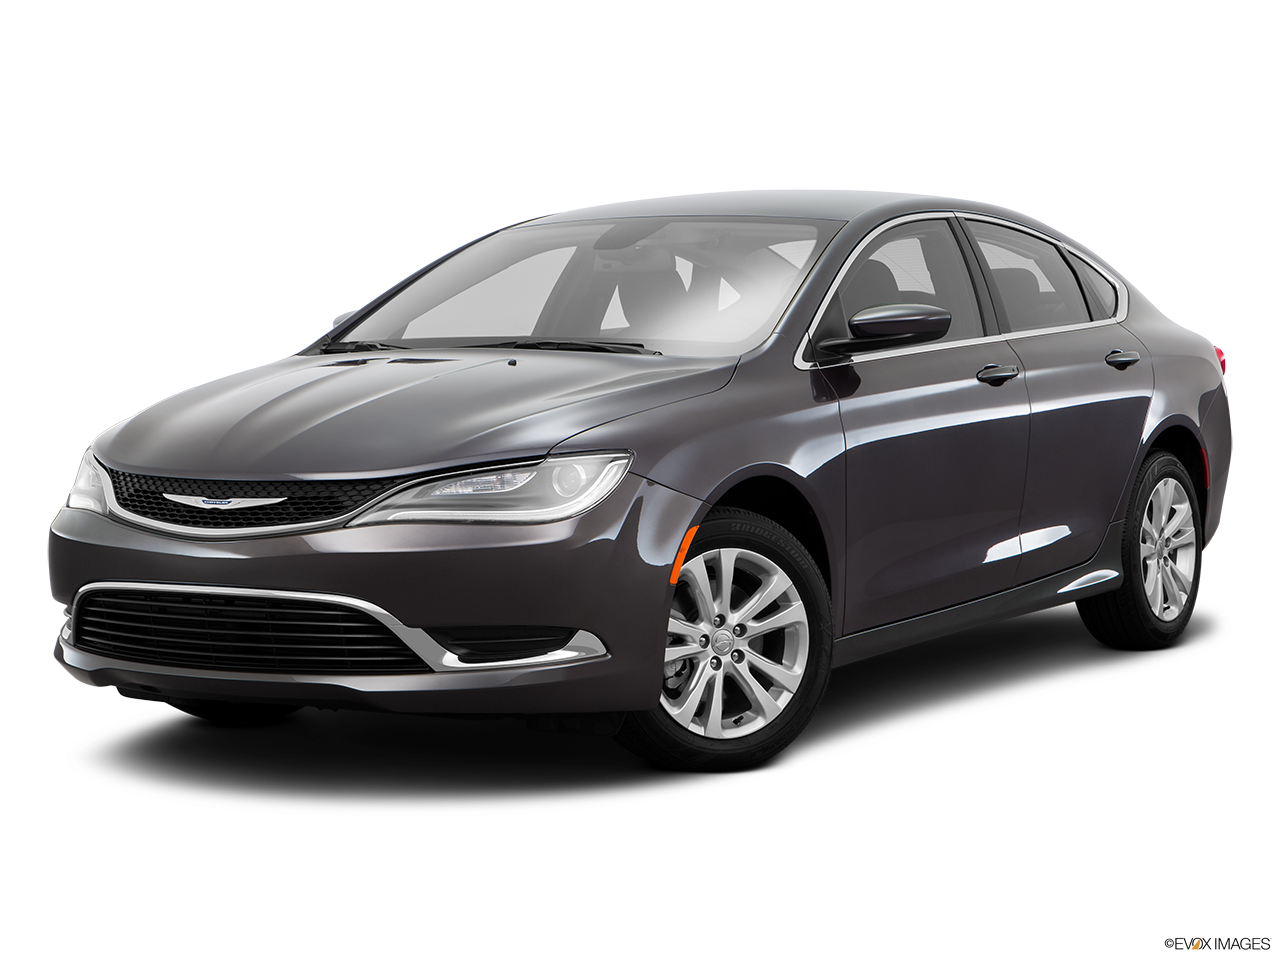 Test Drive A 2016 Chrysler 200 at Carl Burger Dodge Chrysler Jeep Ram World in La Mesa